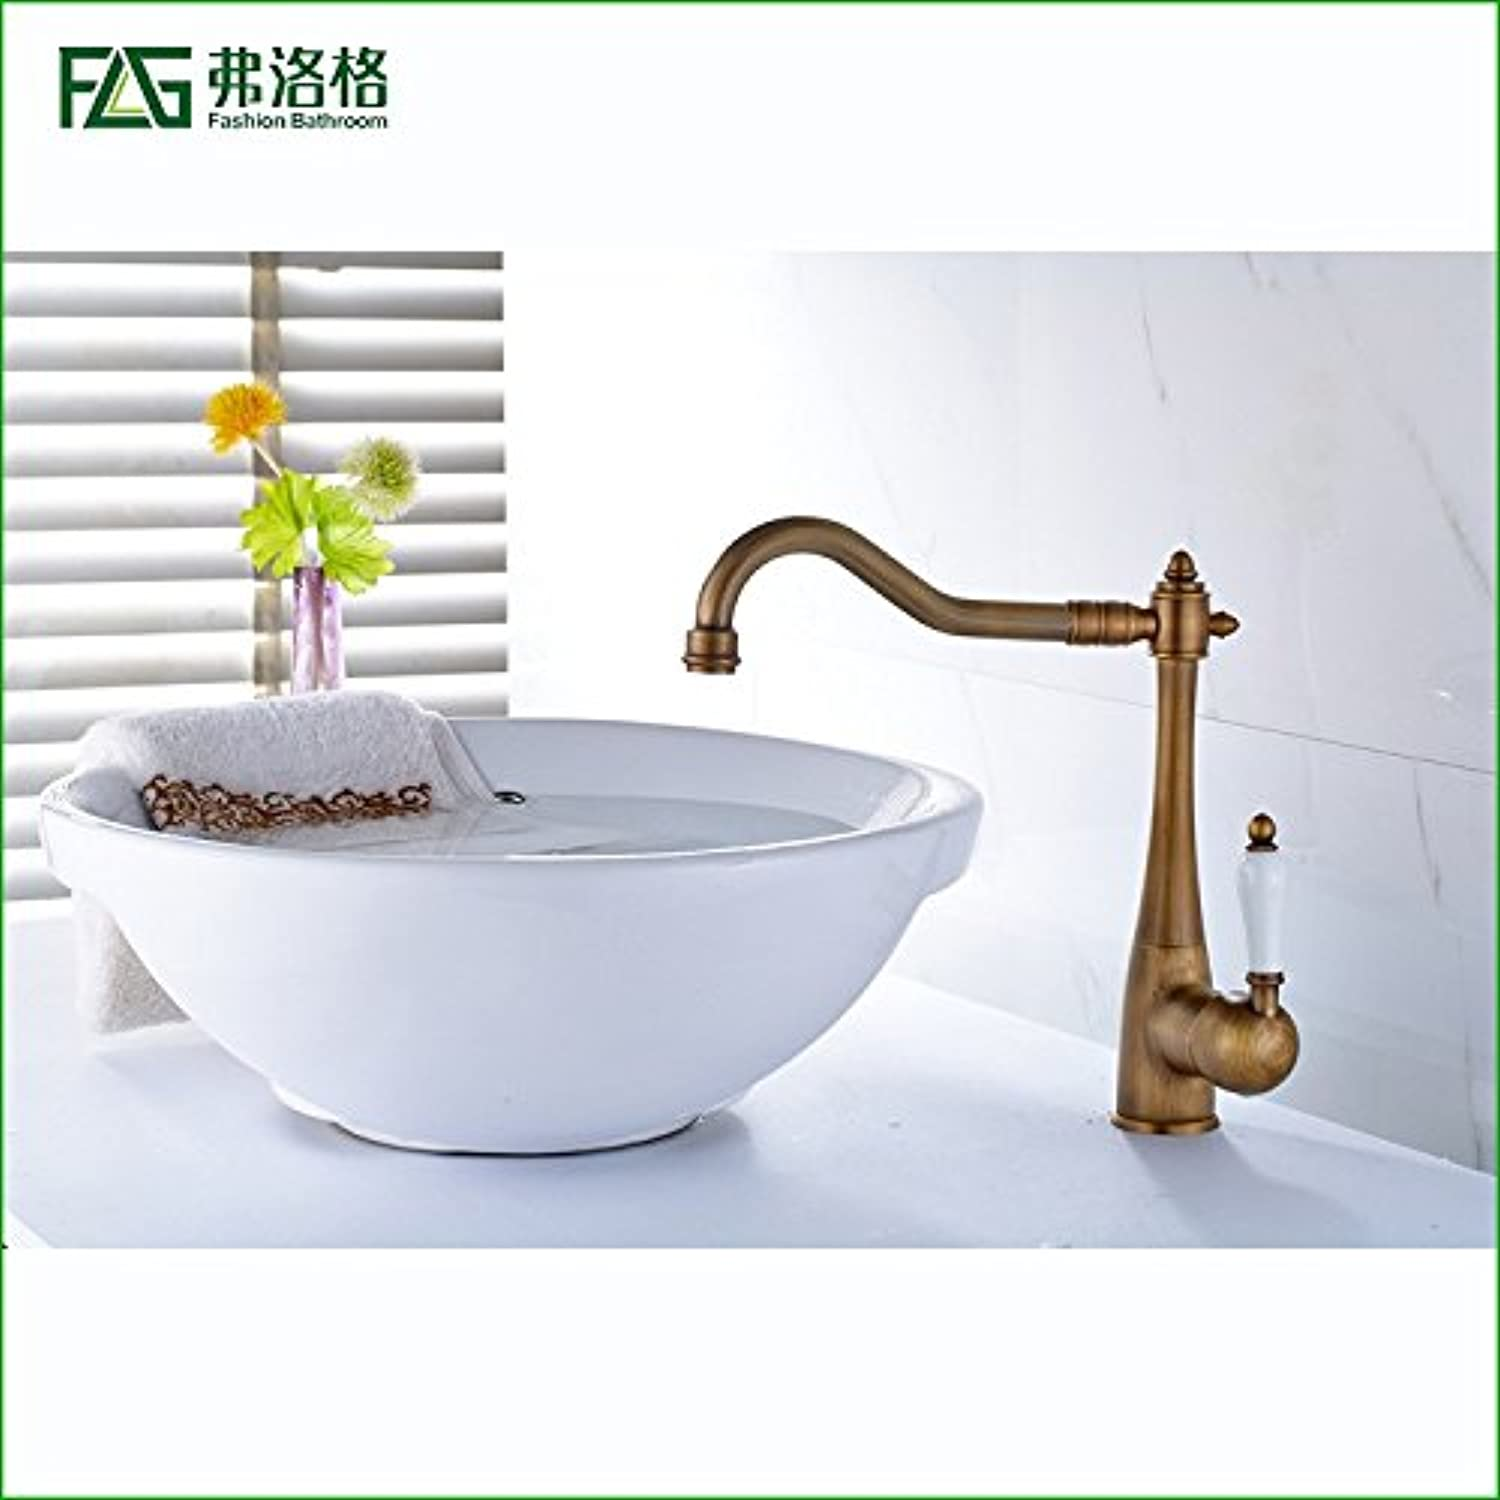 Hlluya Professional Sink Mixer Tap Kitchen Faucet The Antique copper single handle single hole cold-hot water tap basin sink mixer console